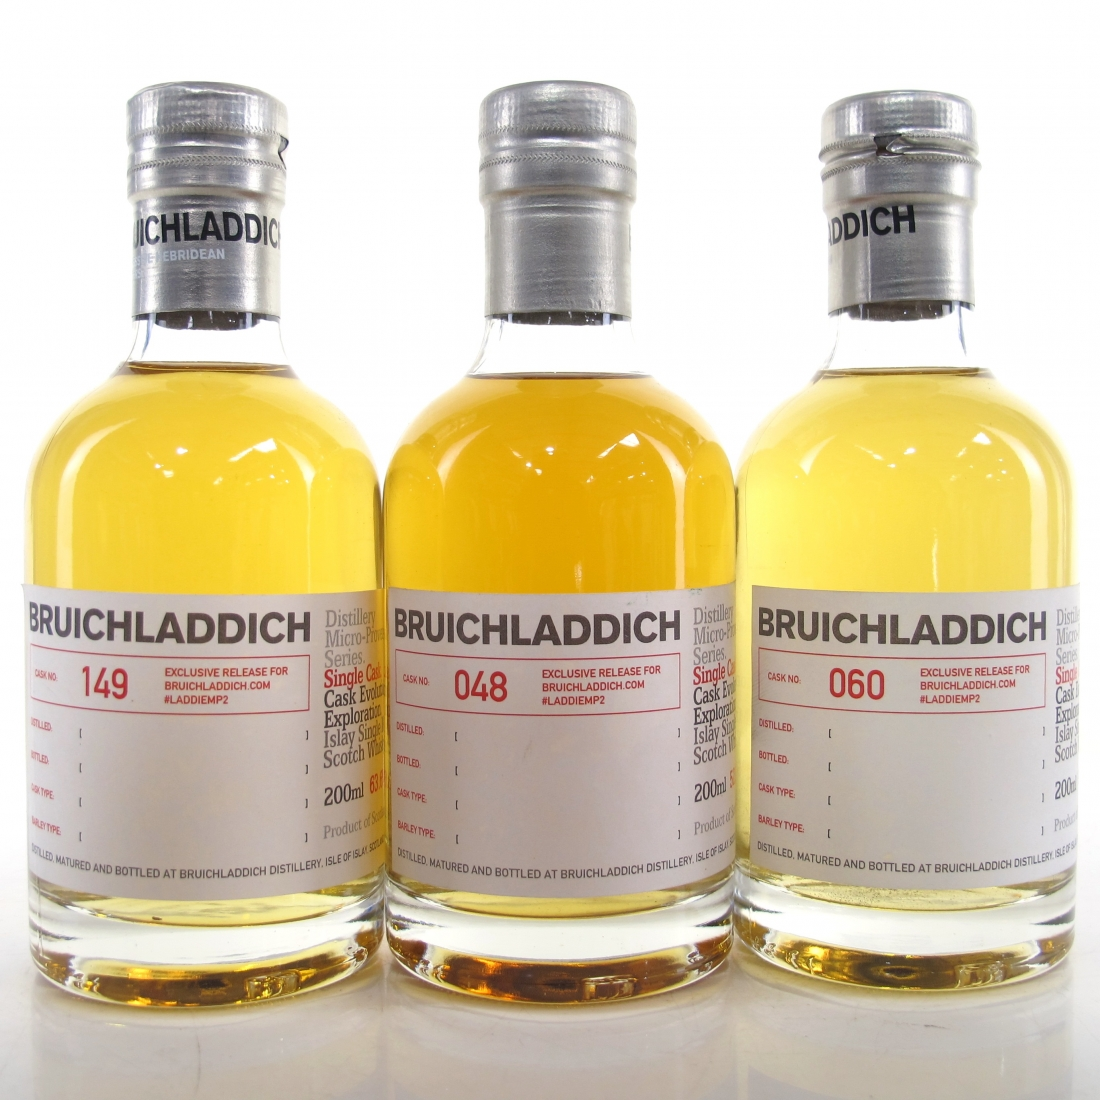 Bruichladdich 2nd Micro Provenance Tasting #2 3 x 20cl